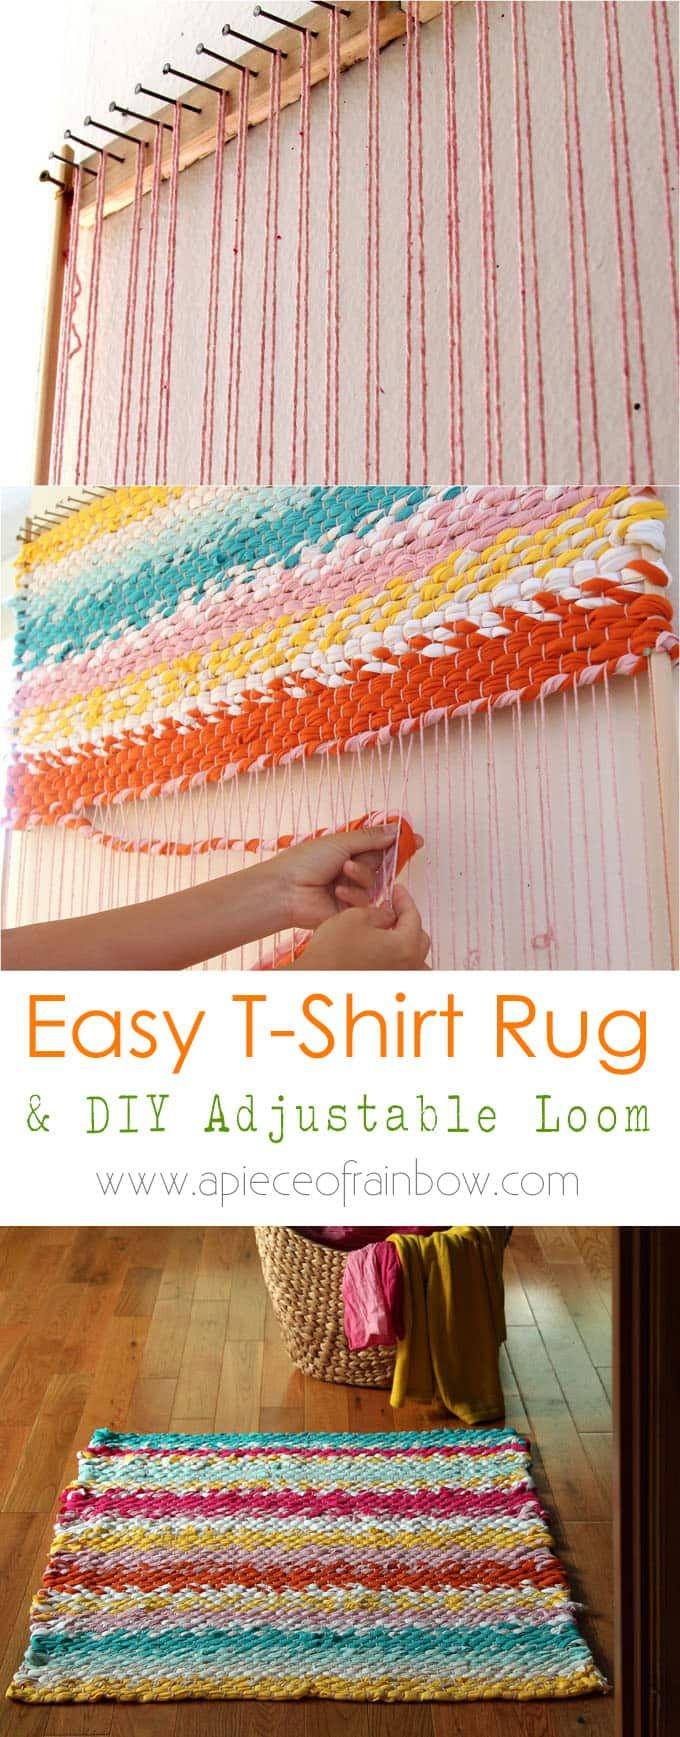 How to build a simple adjustable rug